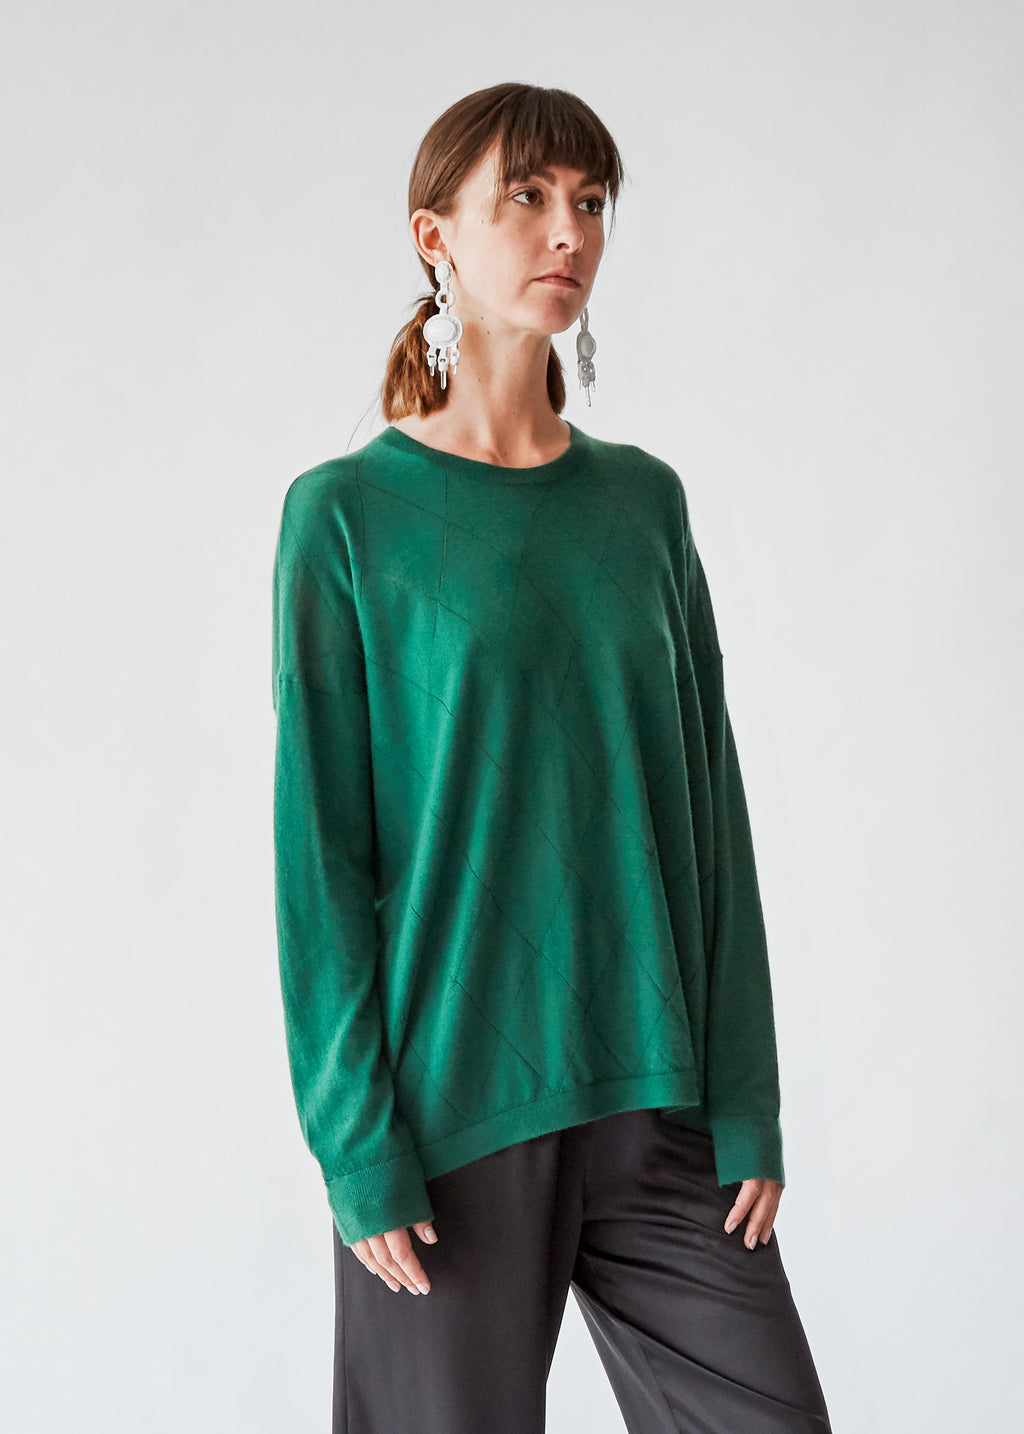 Pointelle Crewneck in Green Cashmere